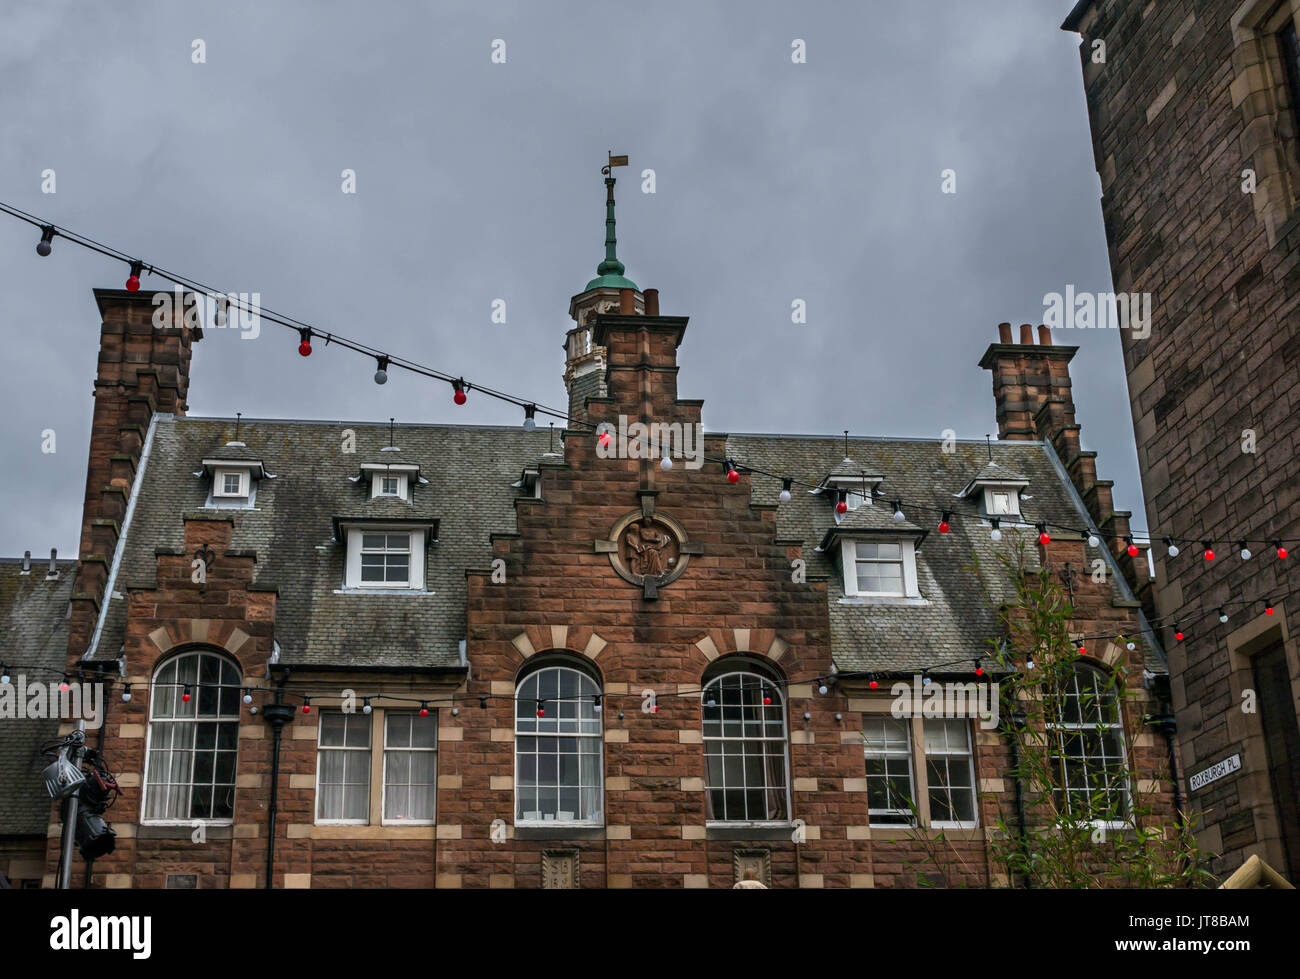 Edinburgh, Scotland, UK, August 7th 2017.  Assembly Roxy fairy lights outside in street with view of roof and windows of a Victorian primary school now converted into flats - Stock Image